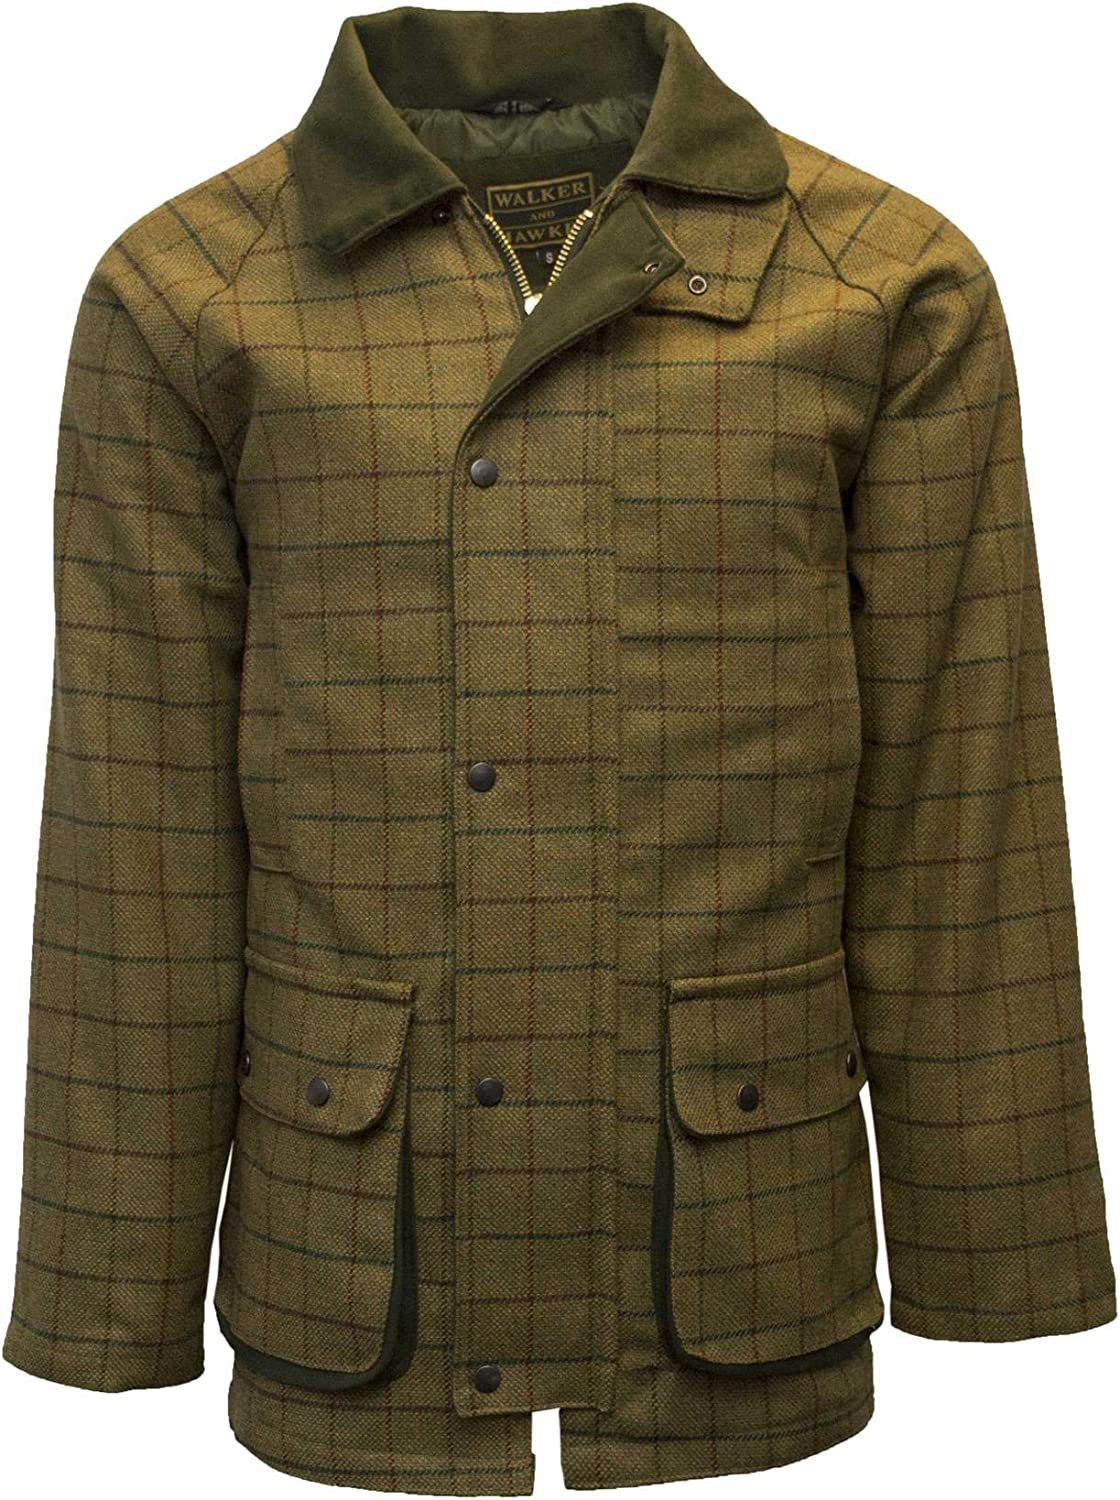 Washington Mall Walker Hawkes - Mens Derby We OFFer at cheap prices Hunting Jack Tweed Shooting Country